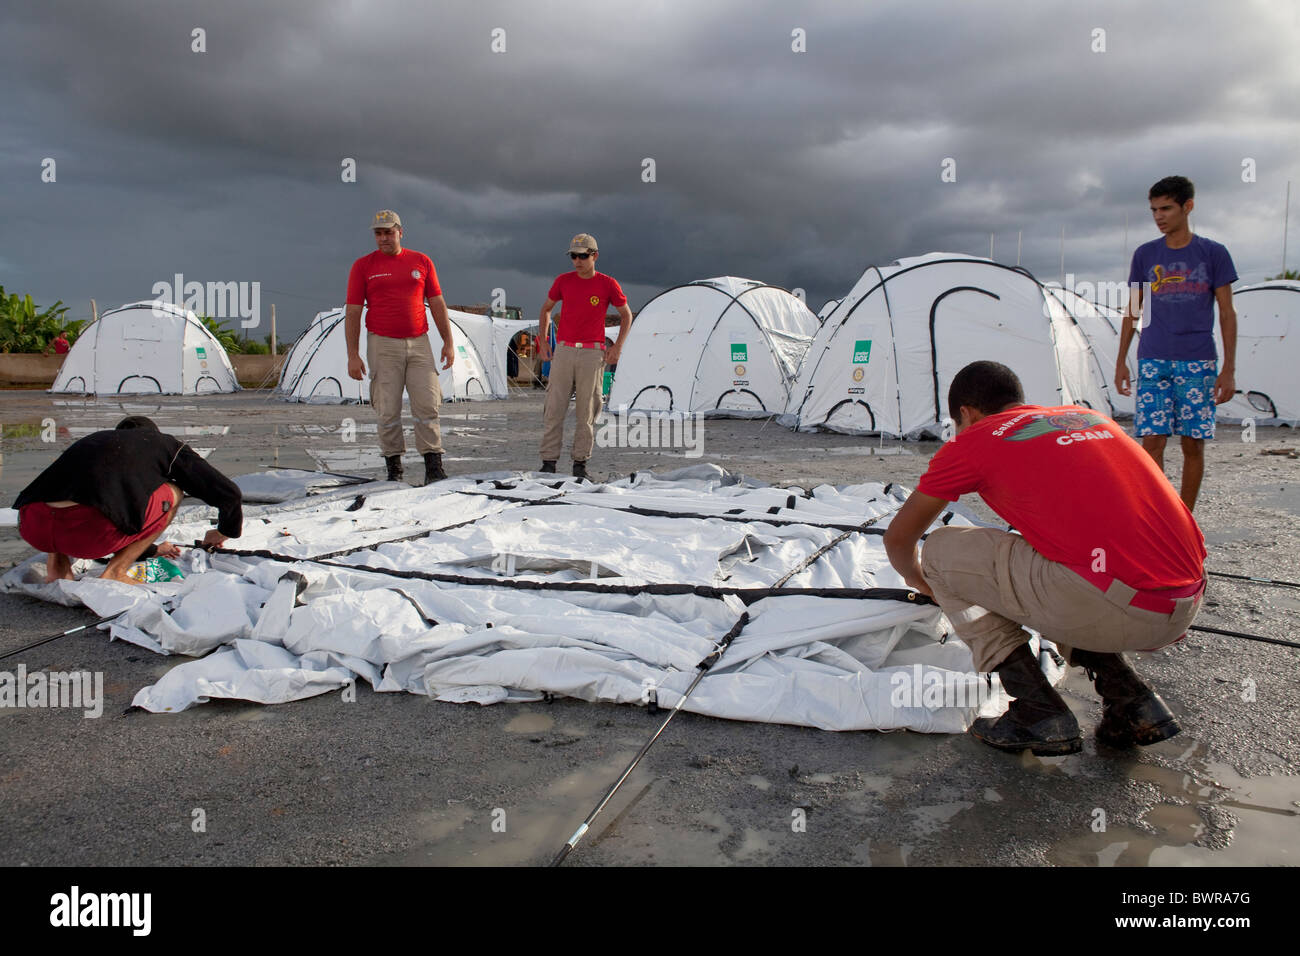 Members of Alegoas Fire Brigade assist in setting up tnets at Uniao Dos Palmares, Alegoas, Brasil Stock Photo